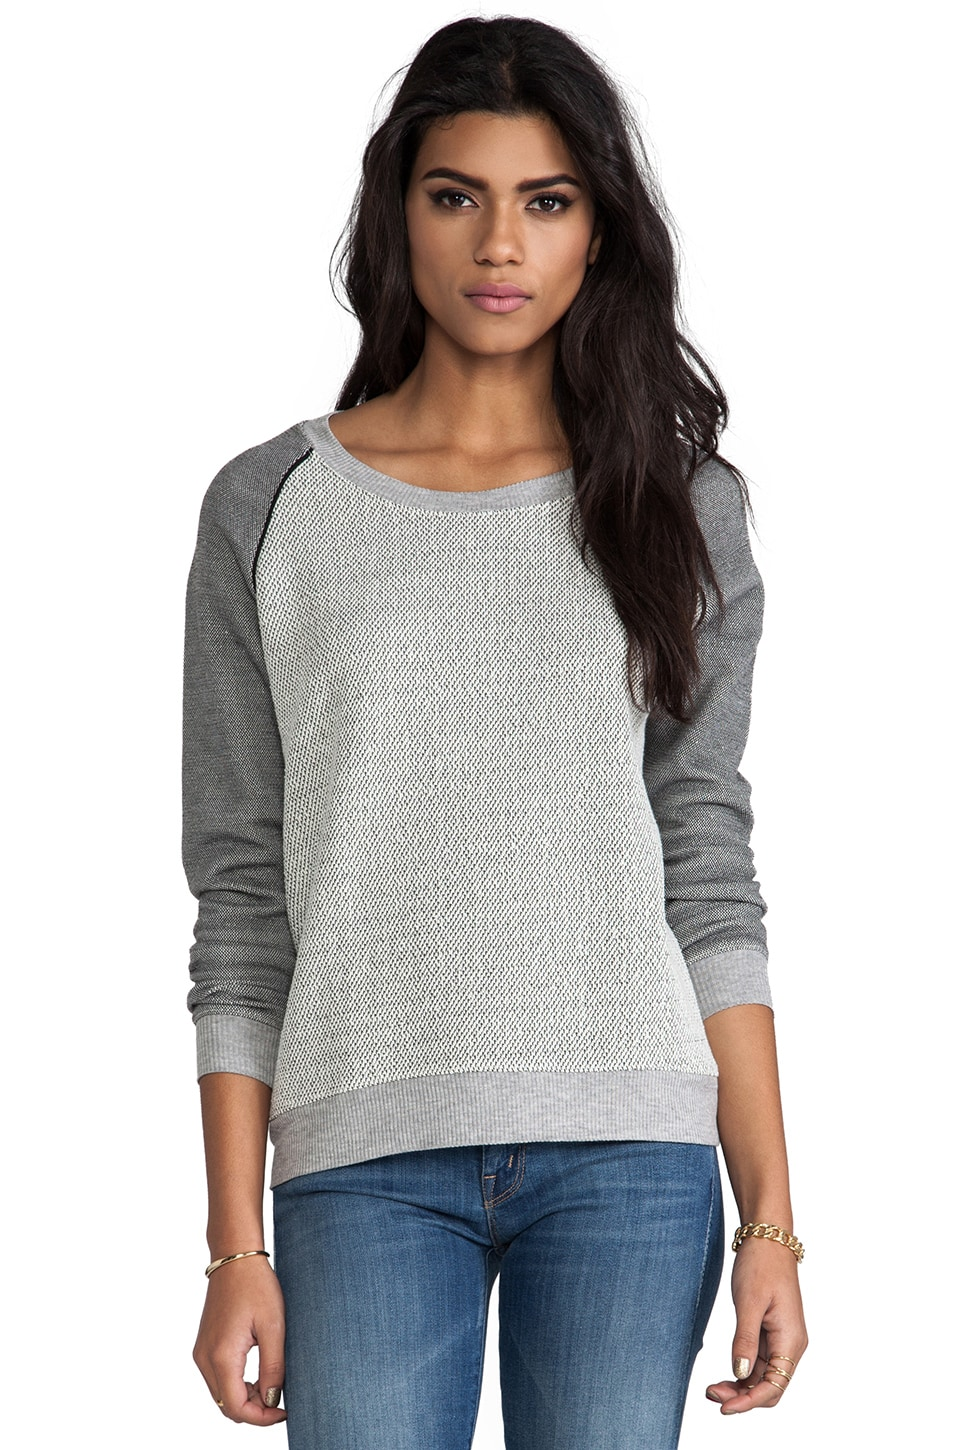 Bella Luxx Oversized Raglan Pullover in Natural